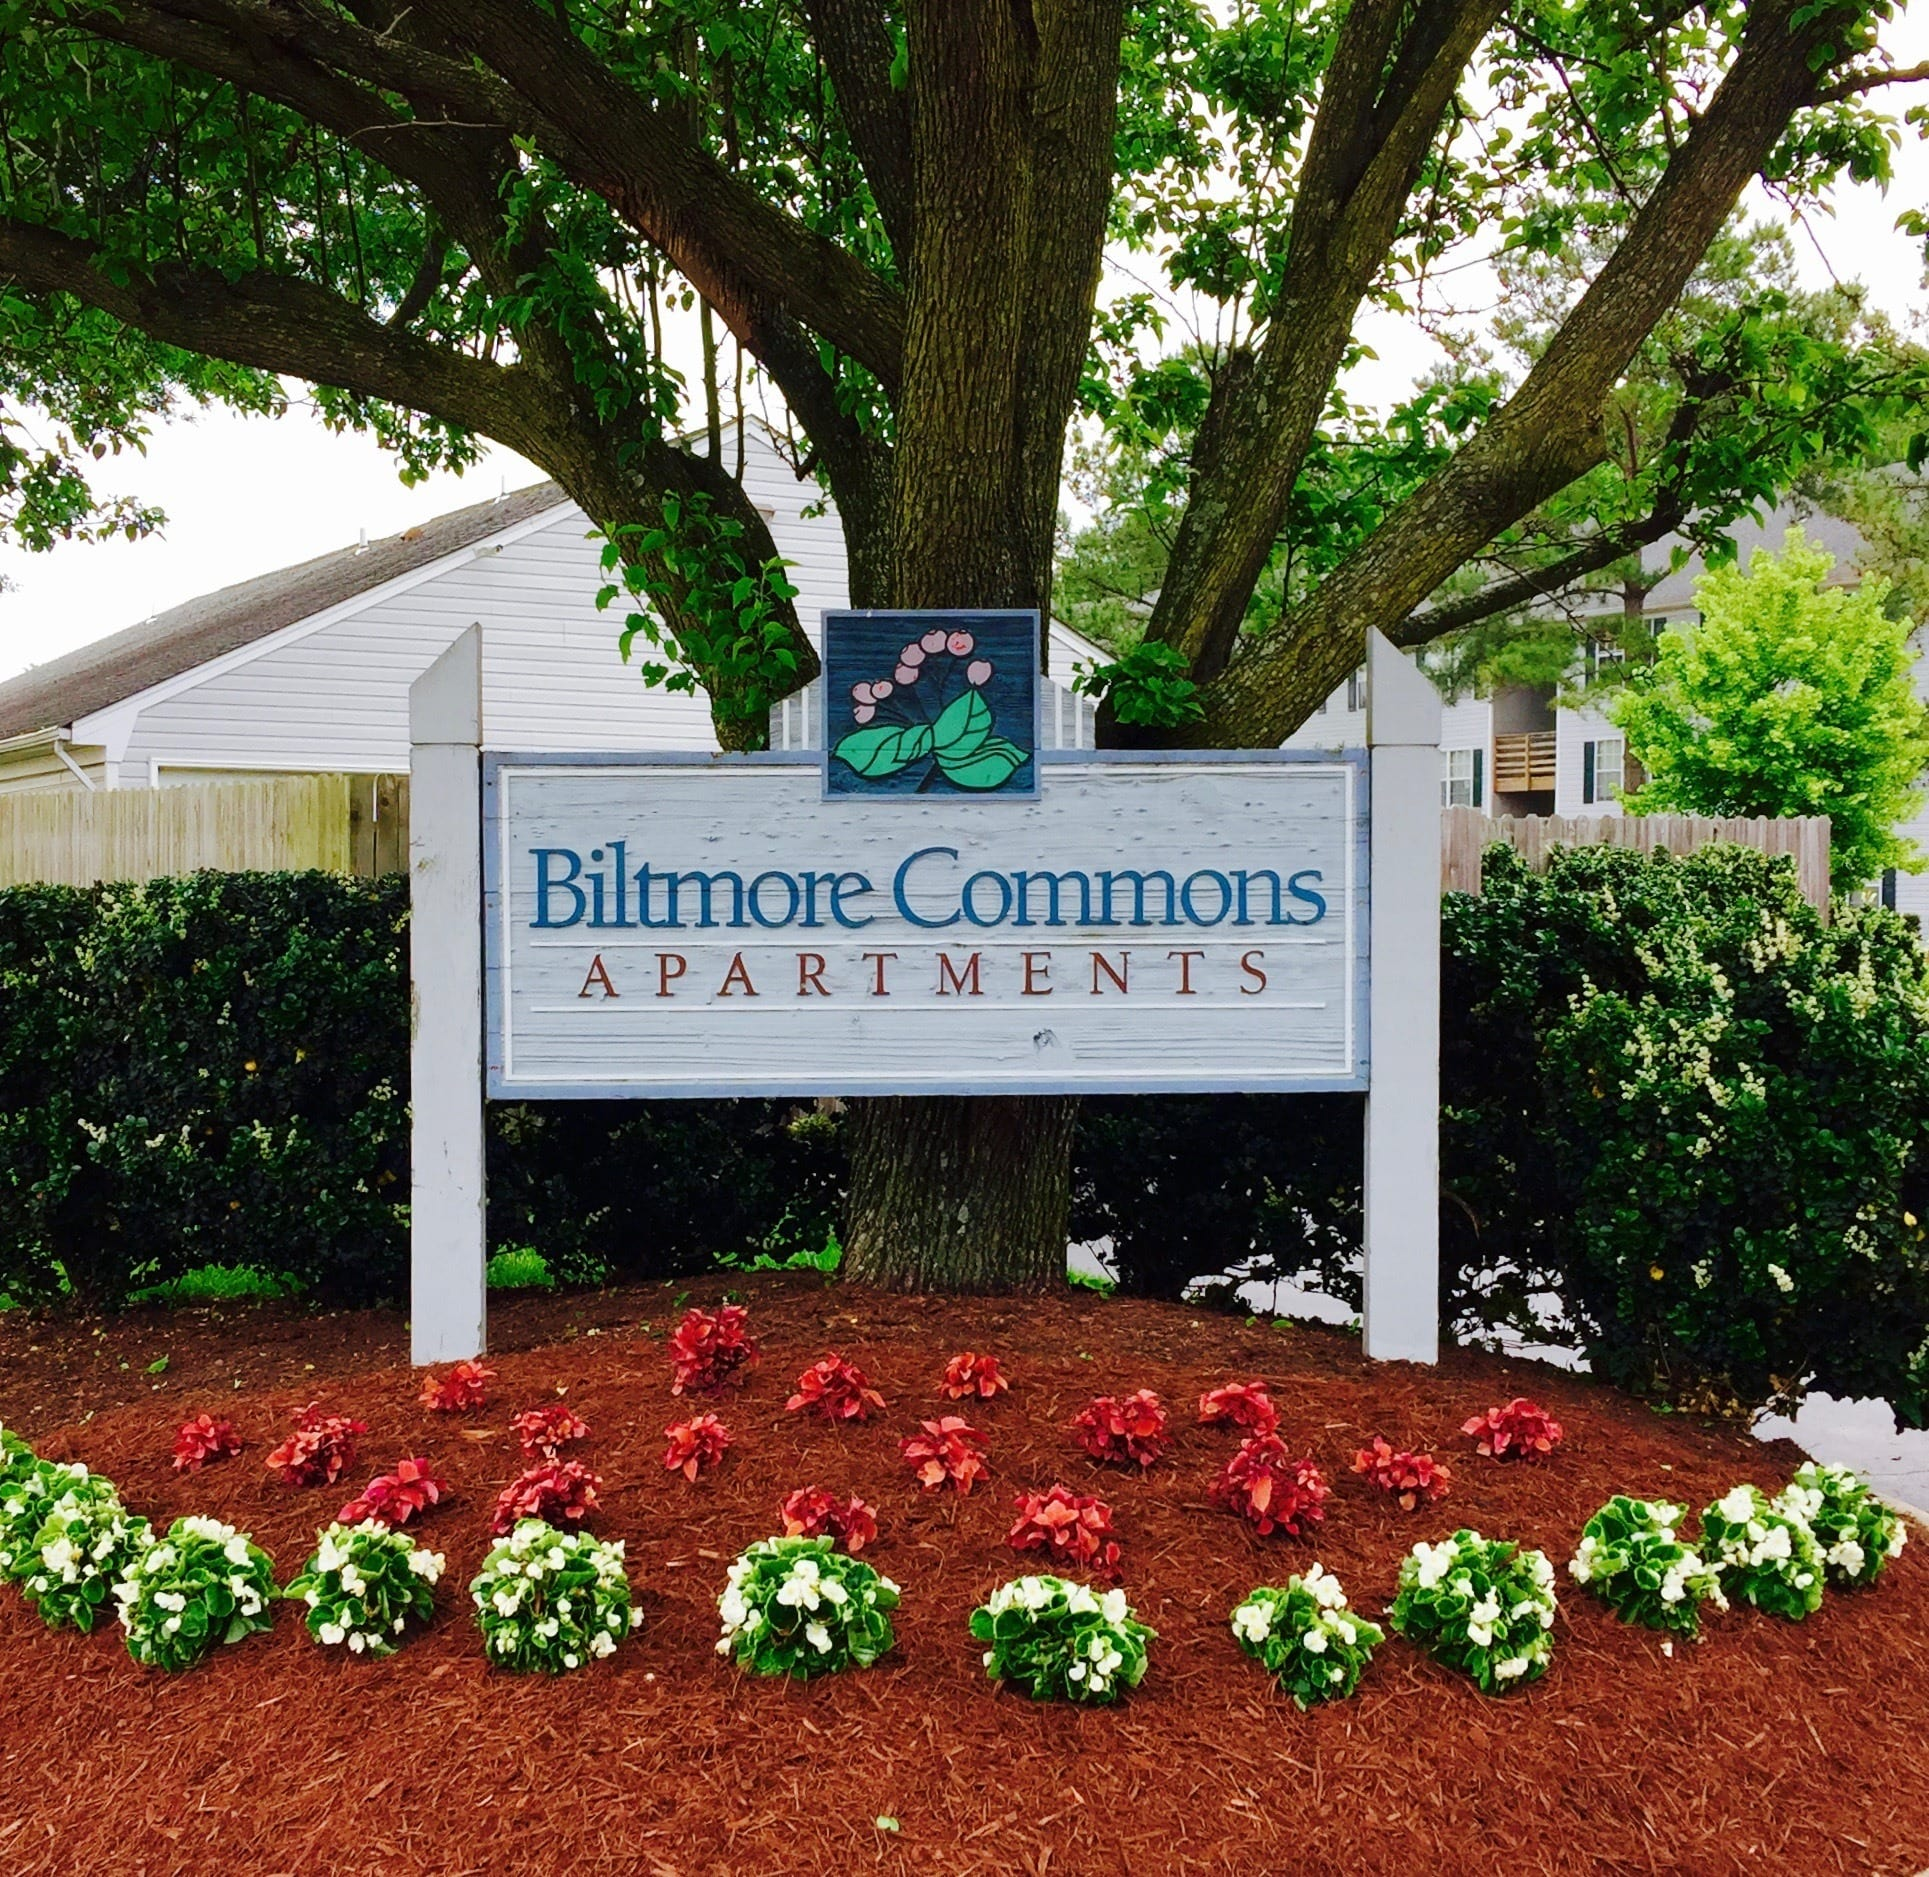 Biltmore Commons